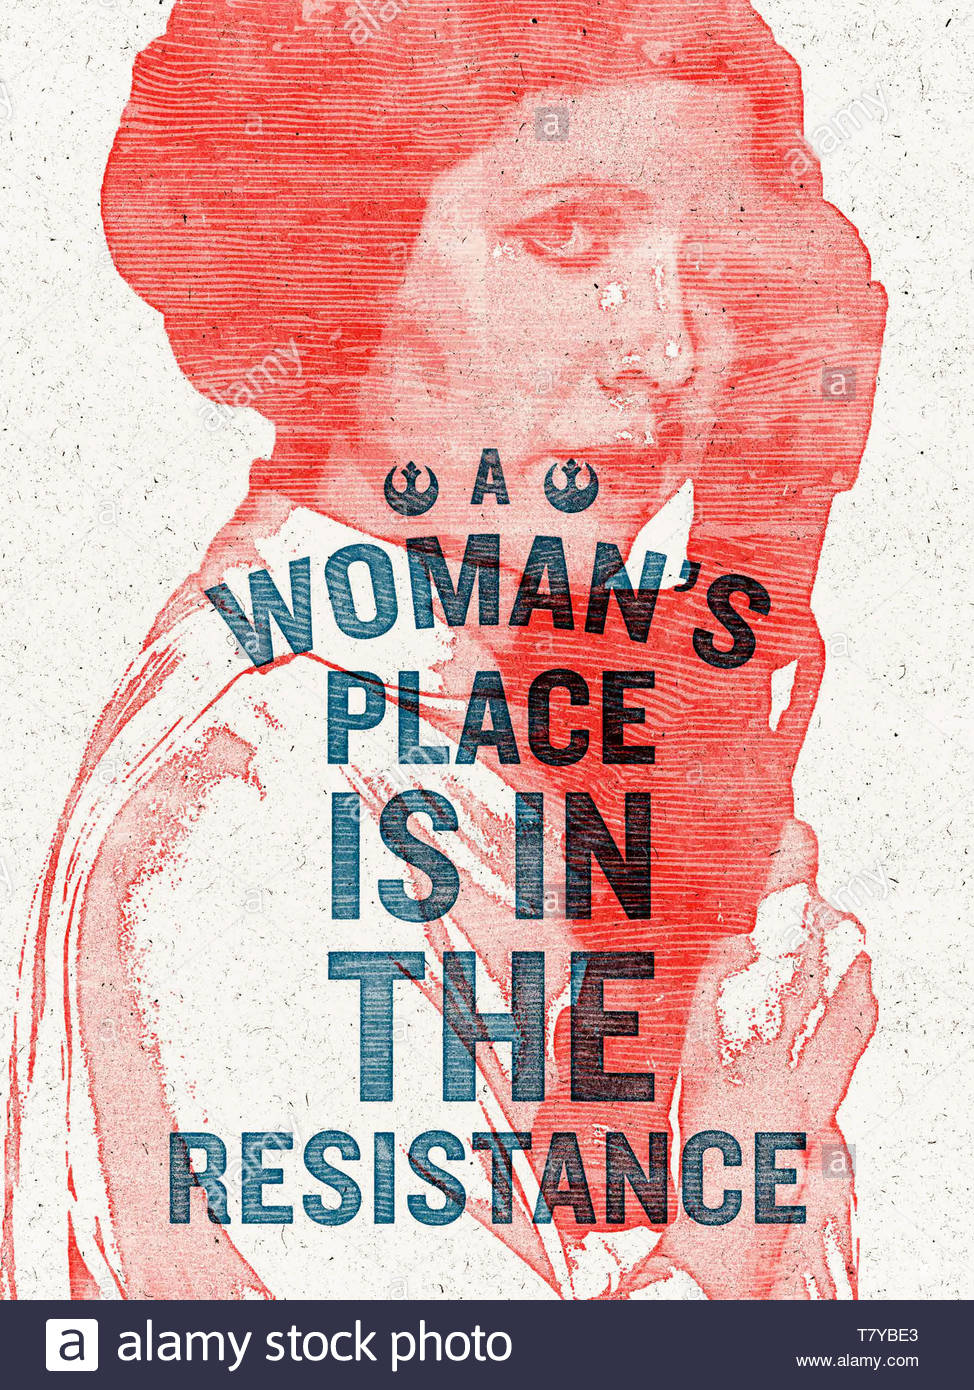 """A Woman's Place is in the Resistance"" 2017 iconic women's rights protest poster designed by graphic designer and artist Hayley Gilmore for the Women's March on Washington on 21 January 2017. See description for more information. - Stock Image"